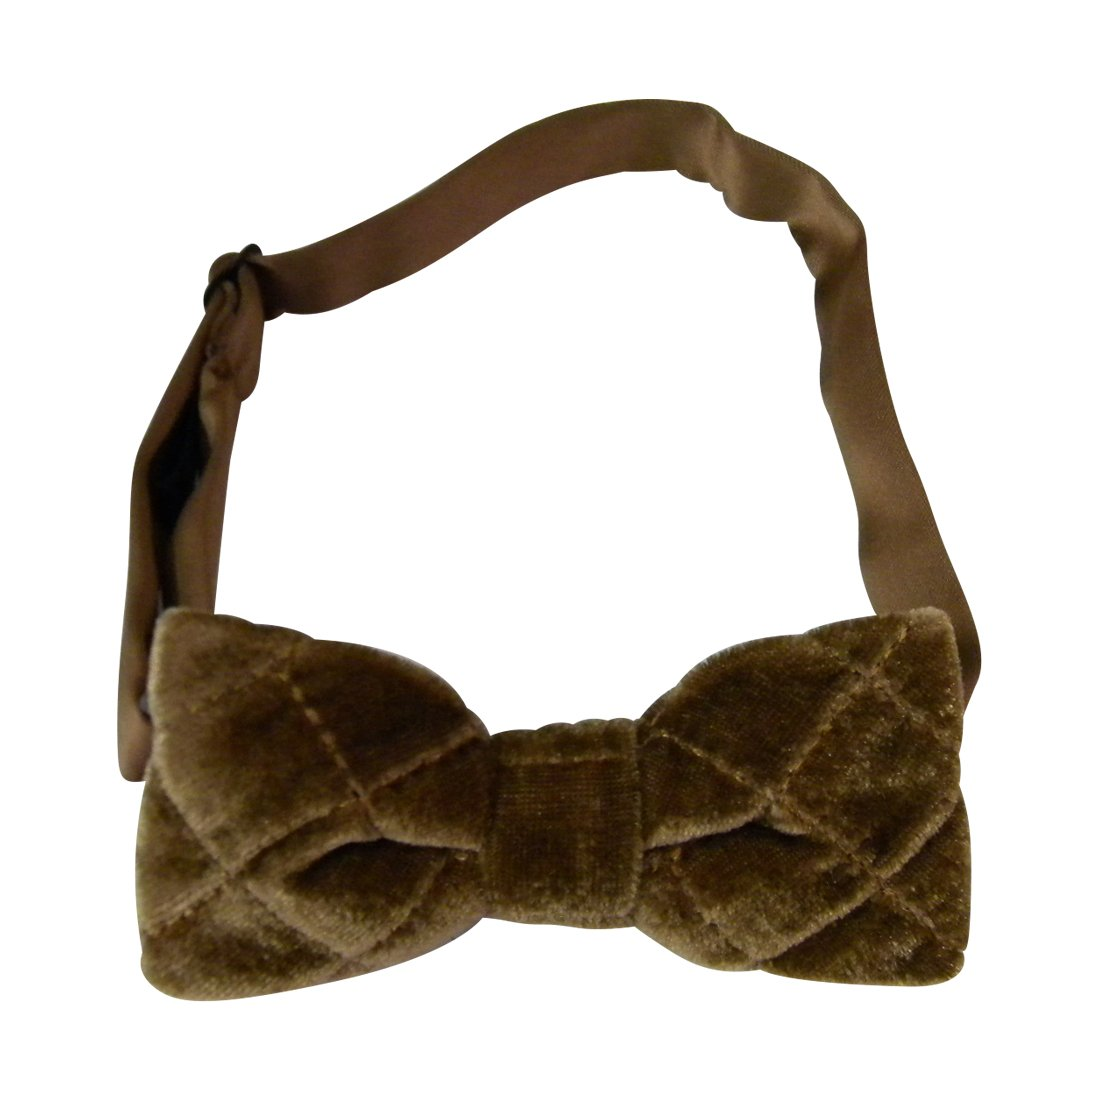 Boy's Quilted Velvet Bowtie - Bow Tie with Adjustable Band DaCee Designs Accessories agbt-quilted-camel-SF